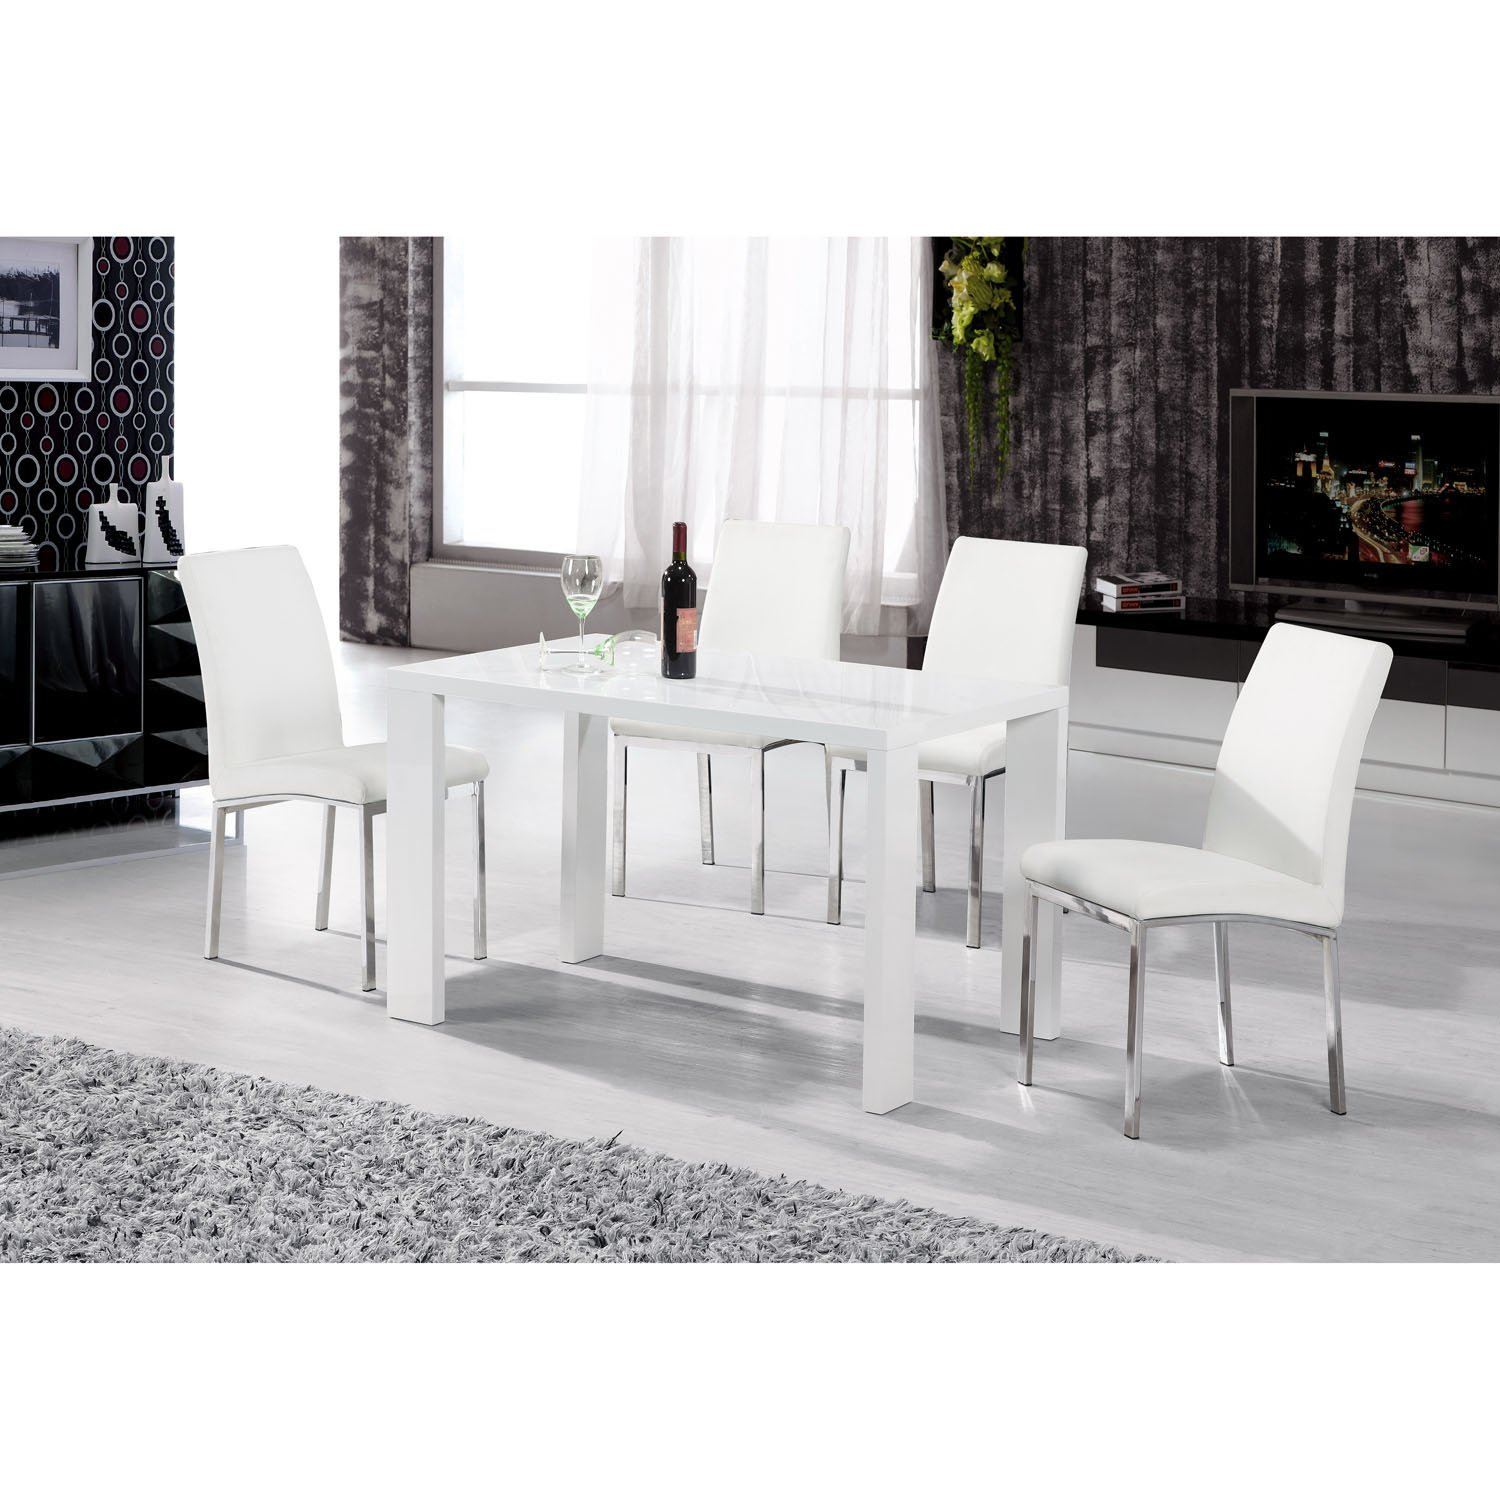 Heartlands Peru White High Gloss 130cm Dining Table In Wood   Rectangular  Dining Table   White Dining Table: Amazon.co.uk: Kitchen U0026 Home